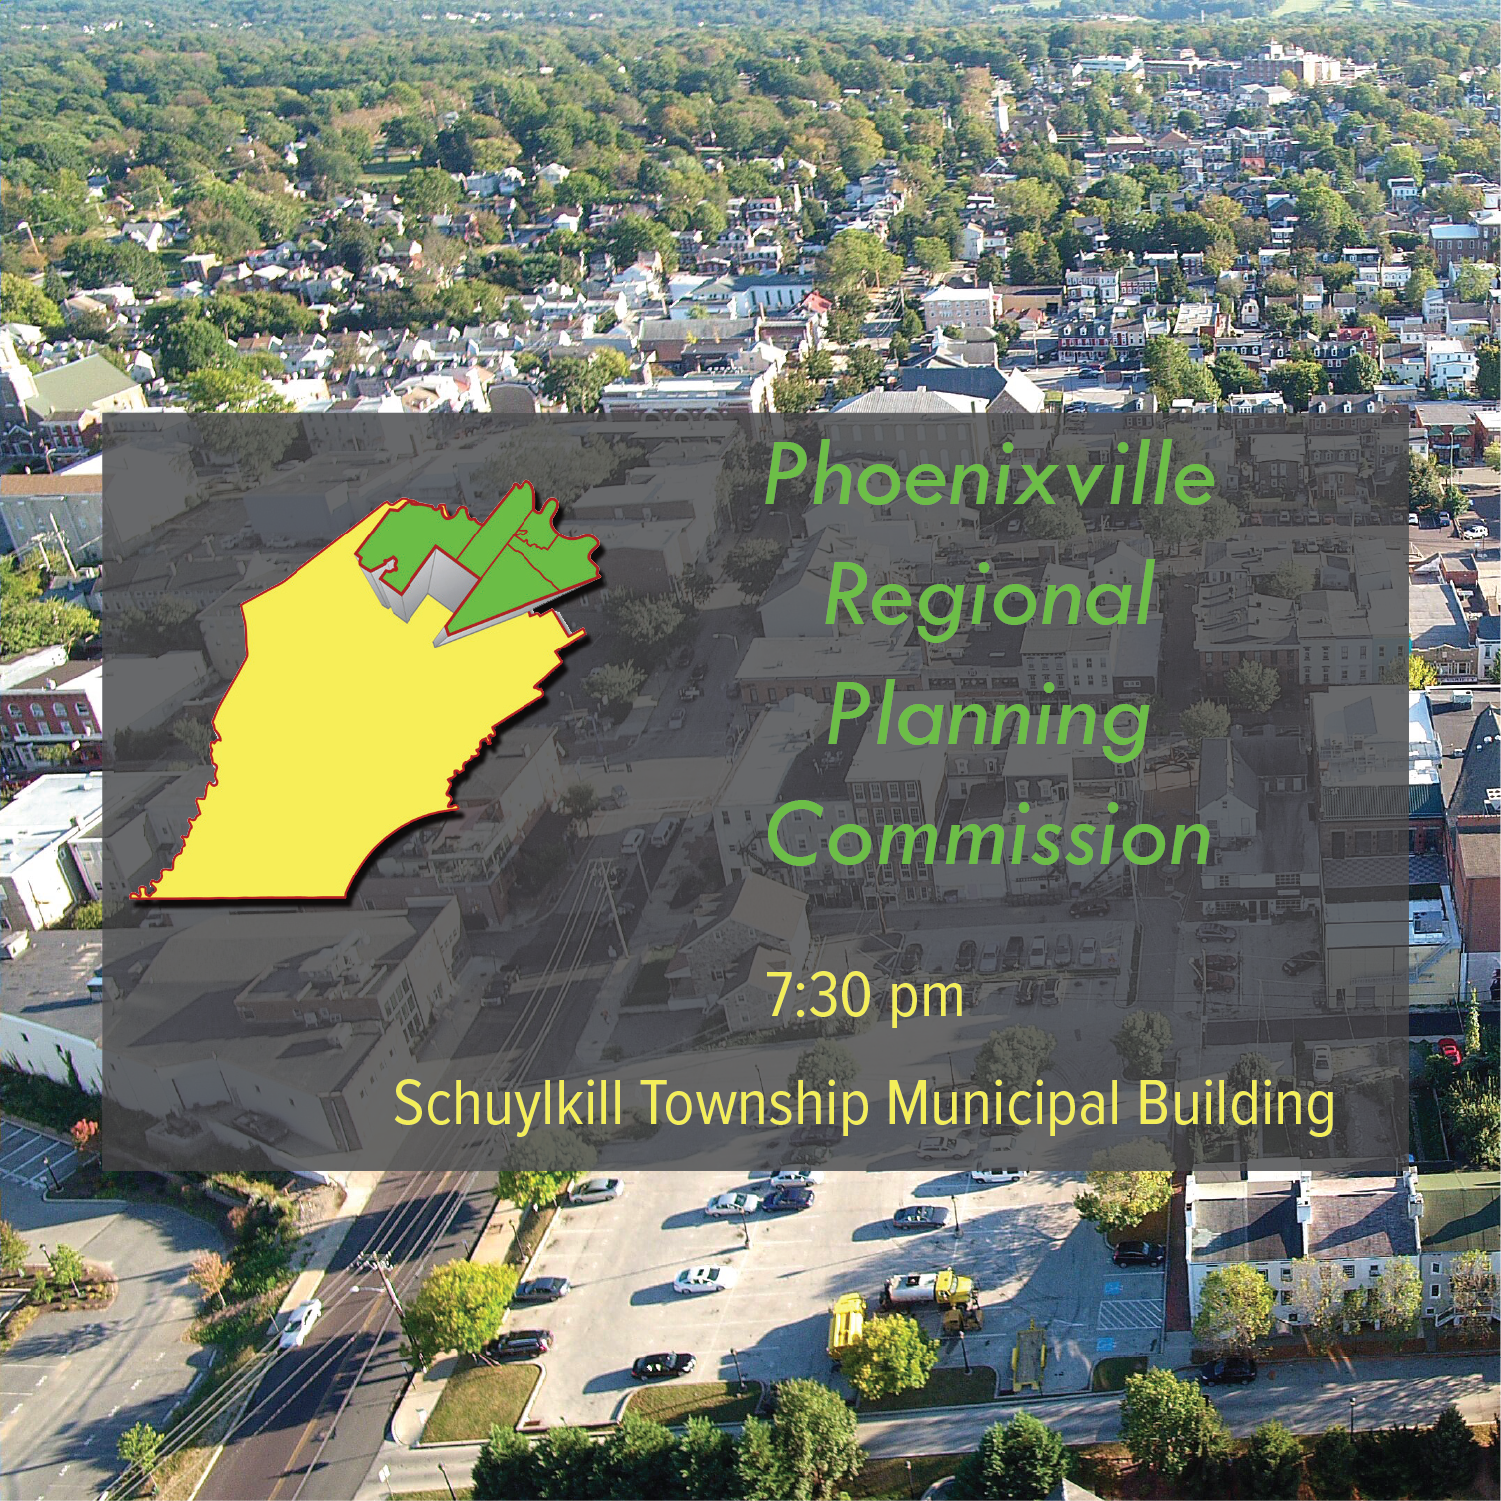 Phoenixville Regional Planning Committee Meeting